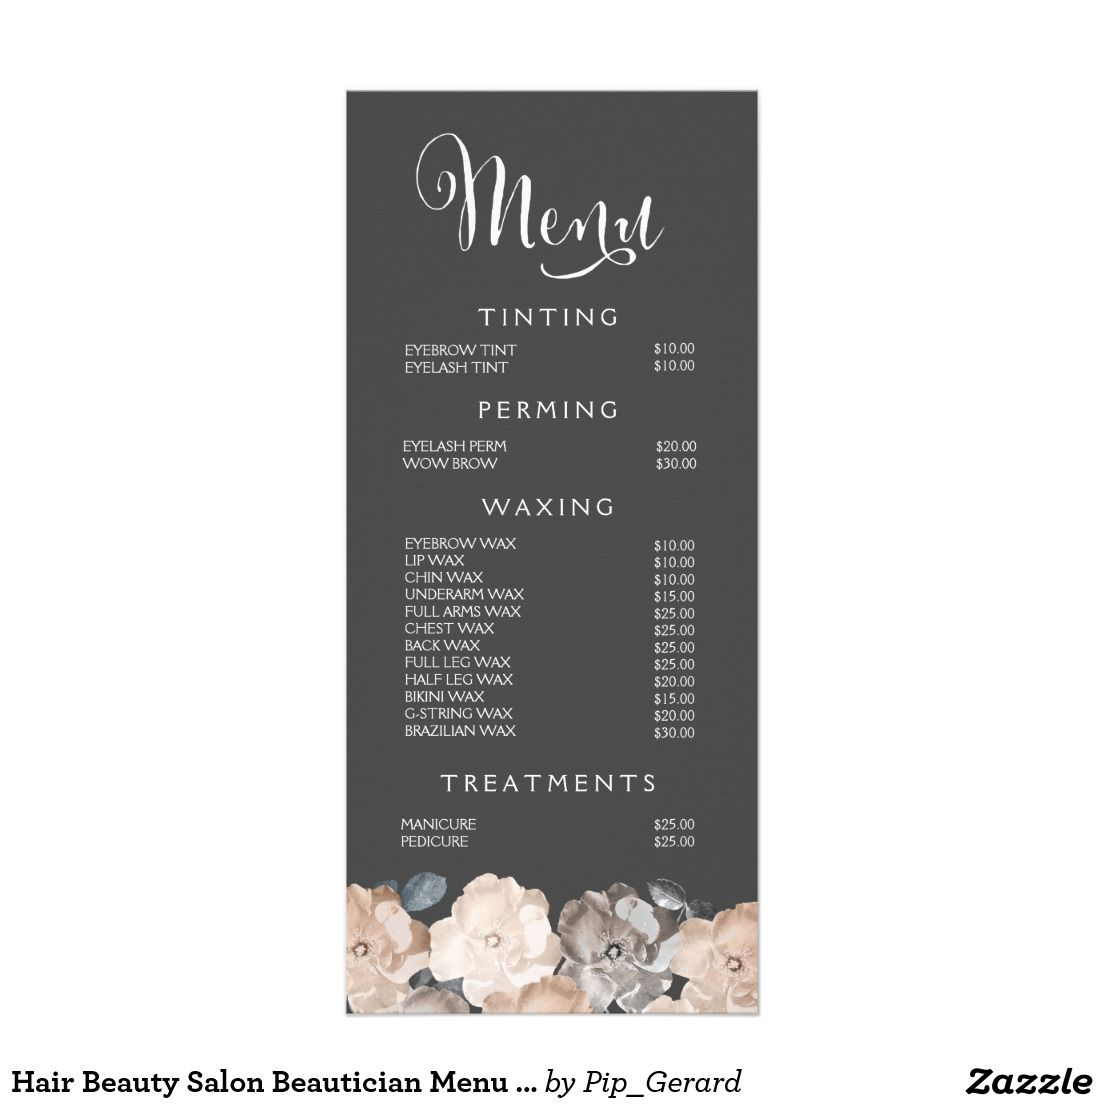 Spa menu template google search spa ideas pinterest spa menu spa menu template google search salon menu salon salon salon design spa maxwellsz